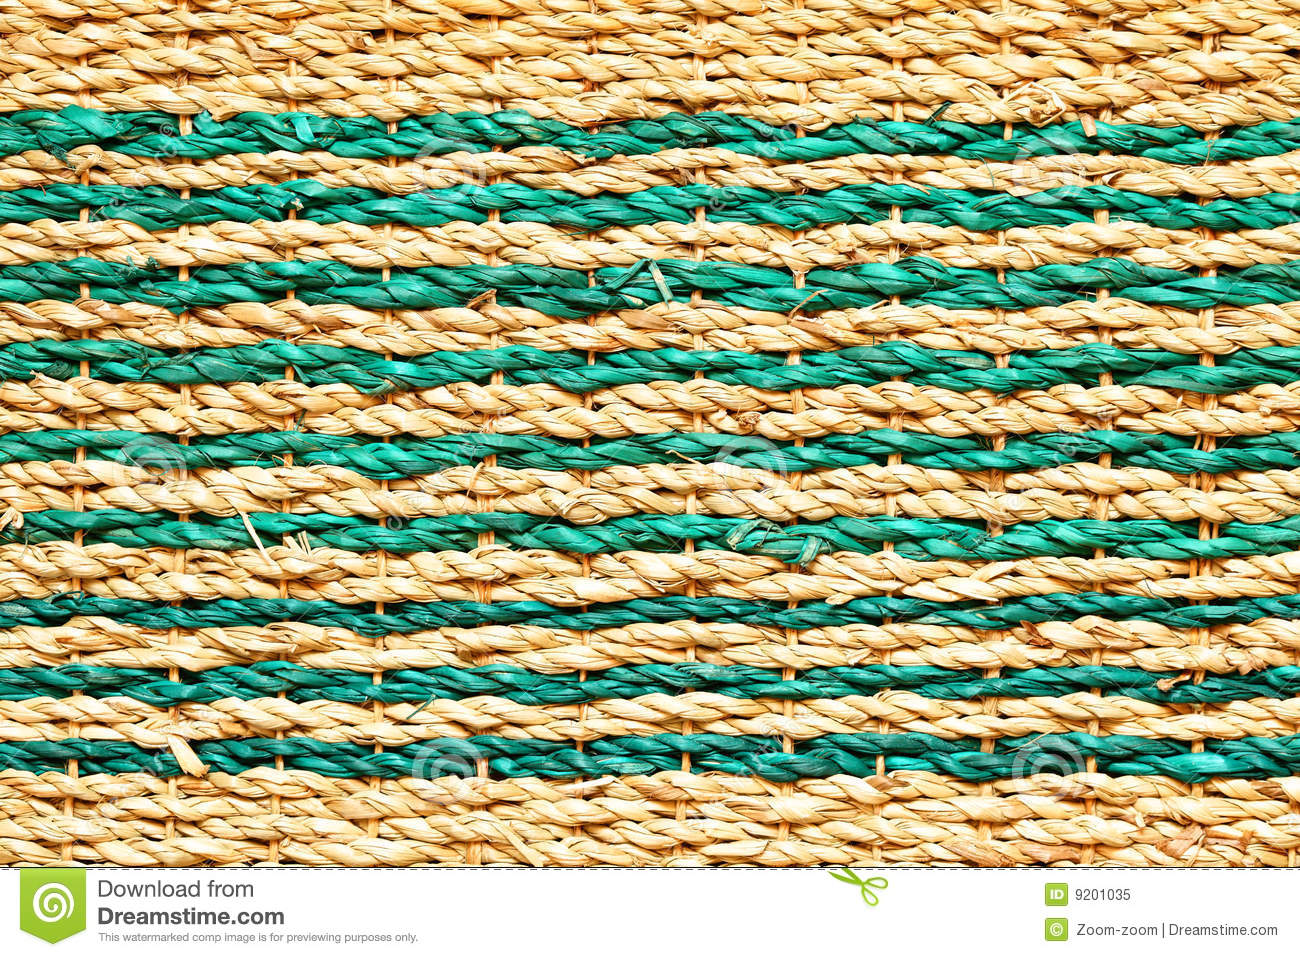 Wicker texture royalty free stock photo image 9201035 for Wicker meaning